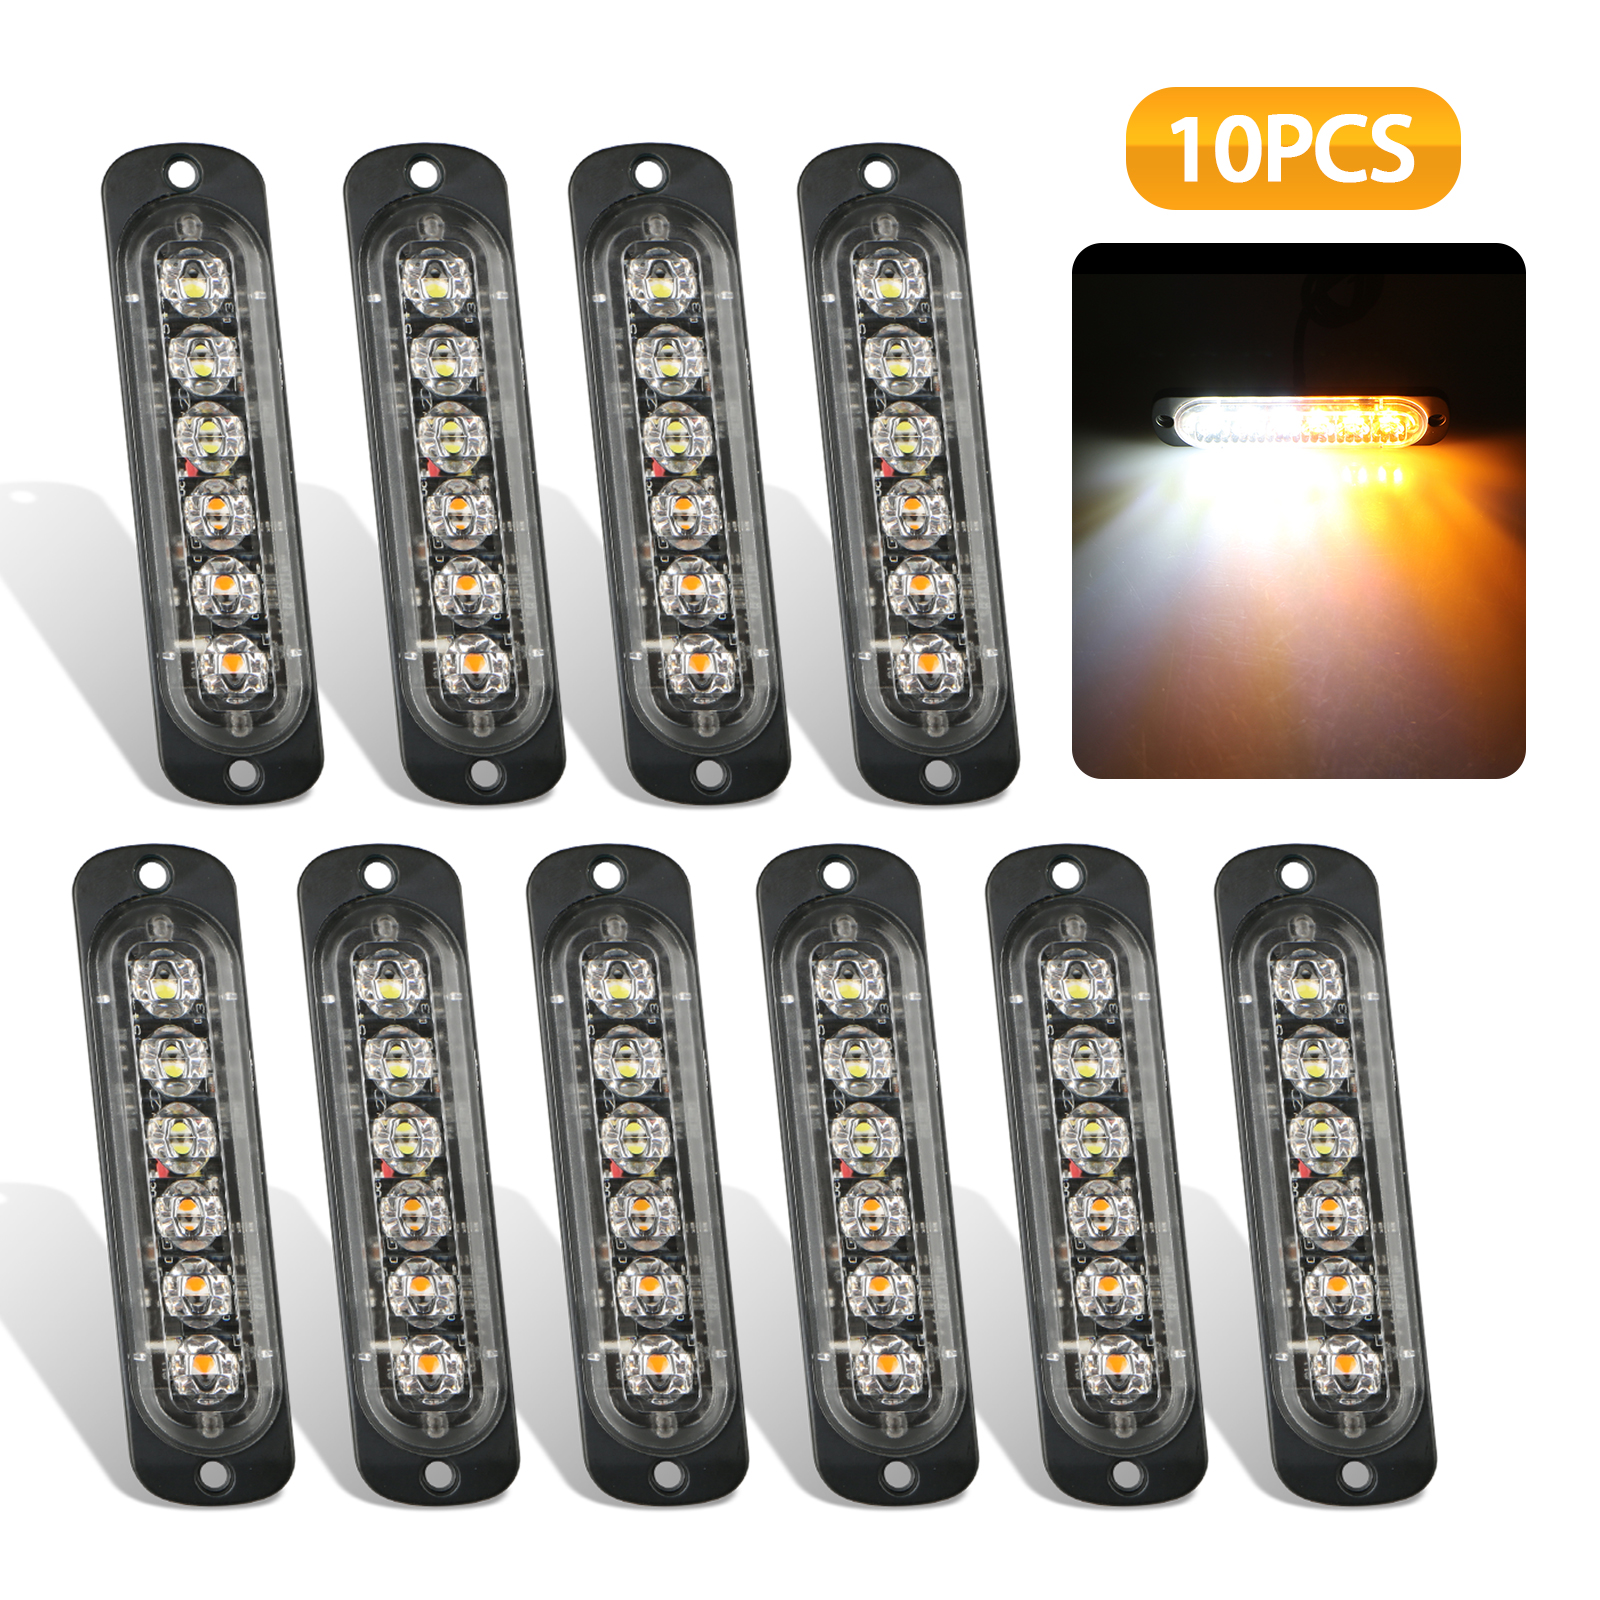 Emergency Strobe Lights, EEEKit Universal 10-Pack 6 LED 18W Surface Mount Amber/White Emergency Warning Hazard Flashing Strobe Light Bar For Off Road Vehicle, ATVs, Truck